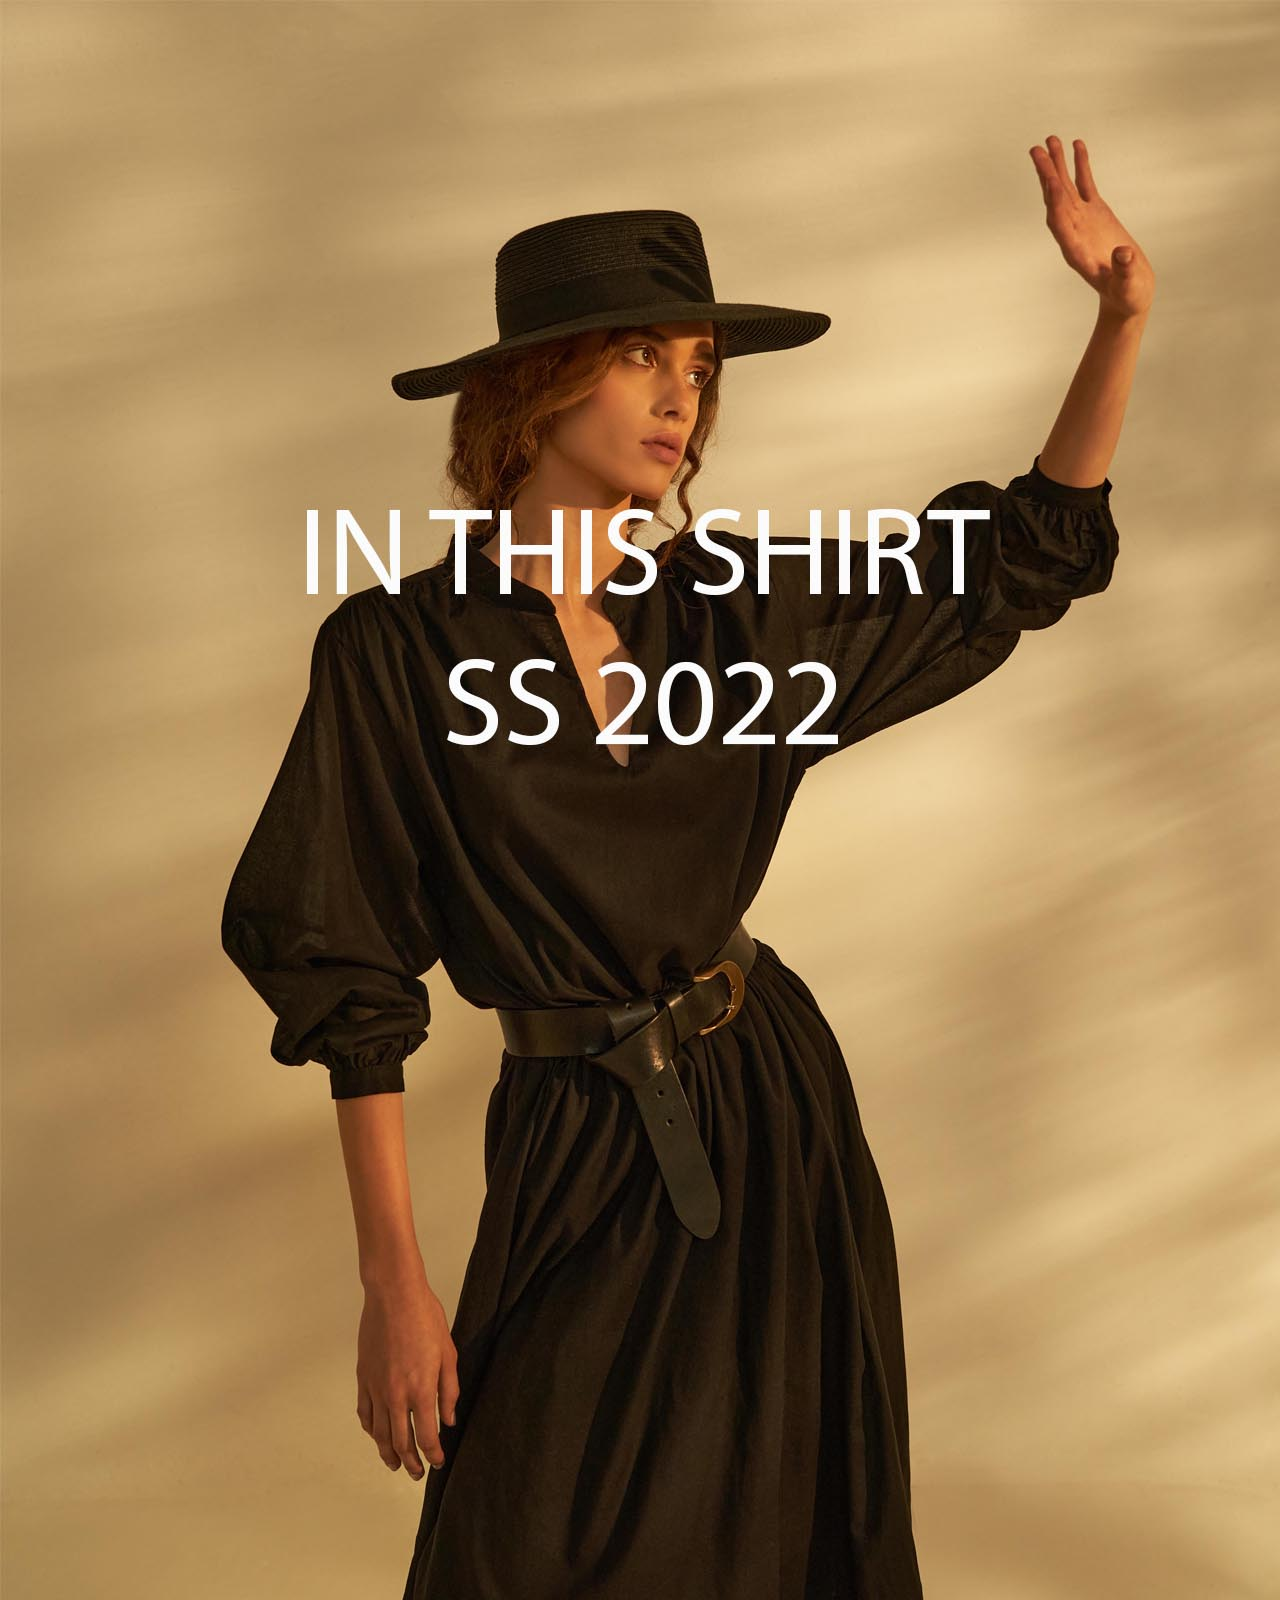 LOOKBOOK IN THIS SHIRT SS 2022 - Andrea Reina